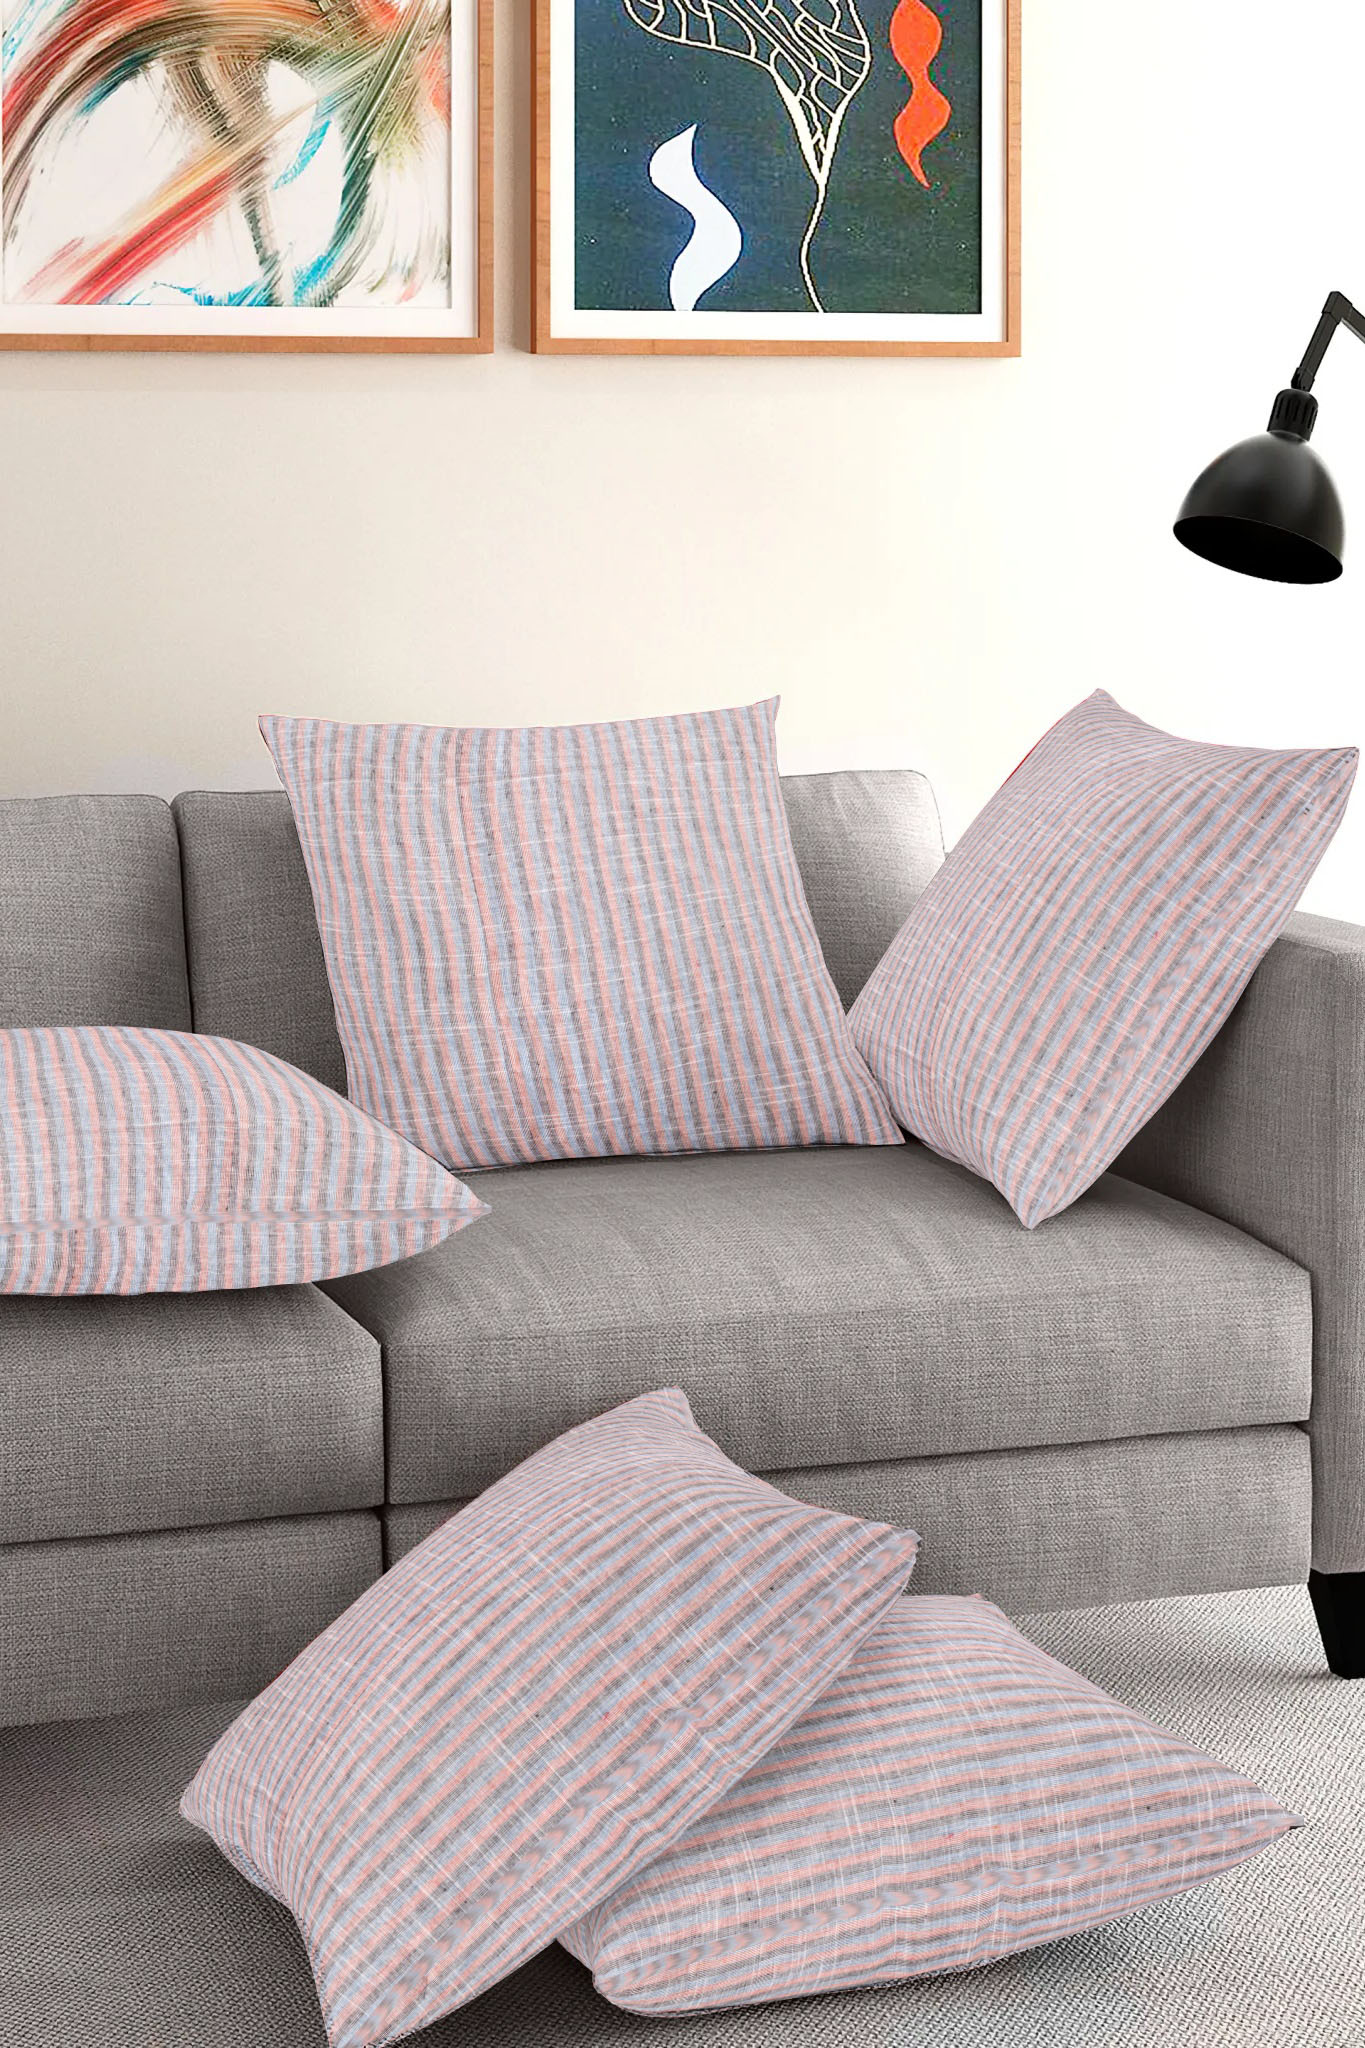 Set of 5-Gray Pink Cotton Cushion Cover-35386-16x16 Inches